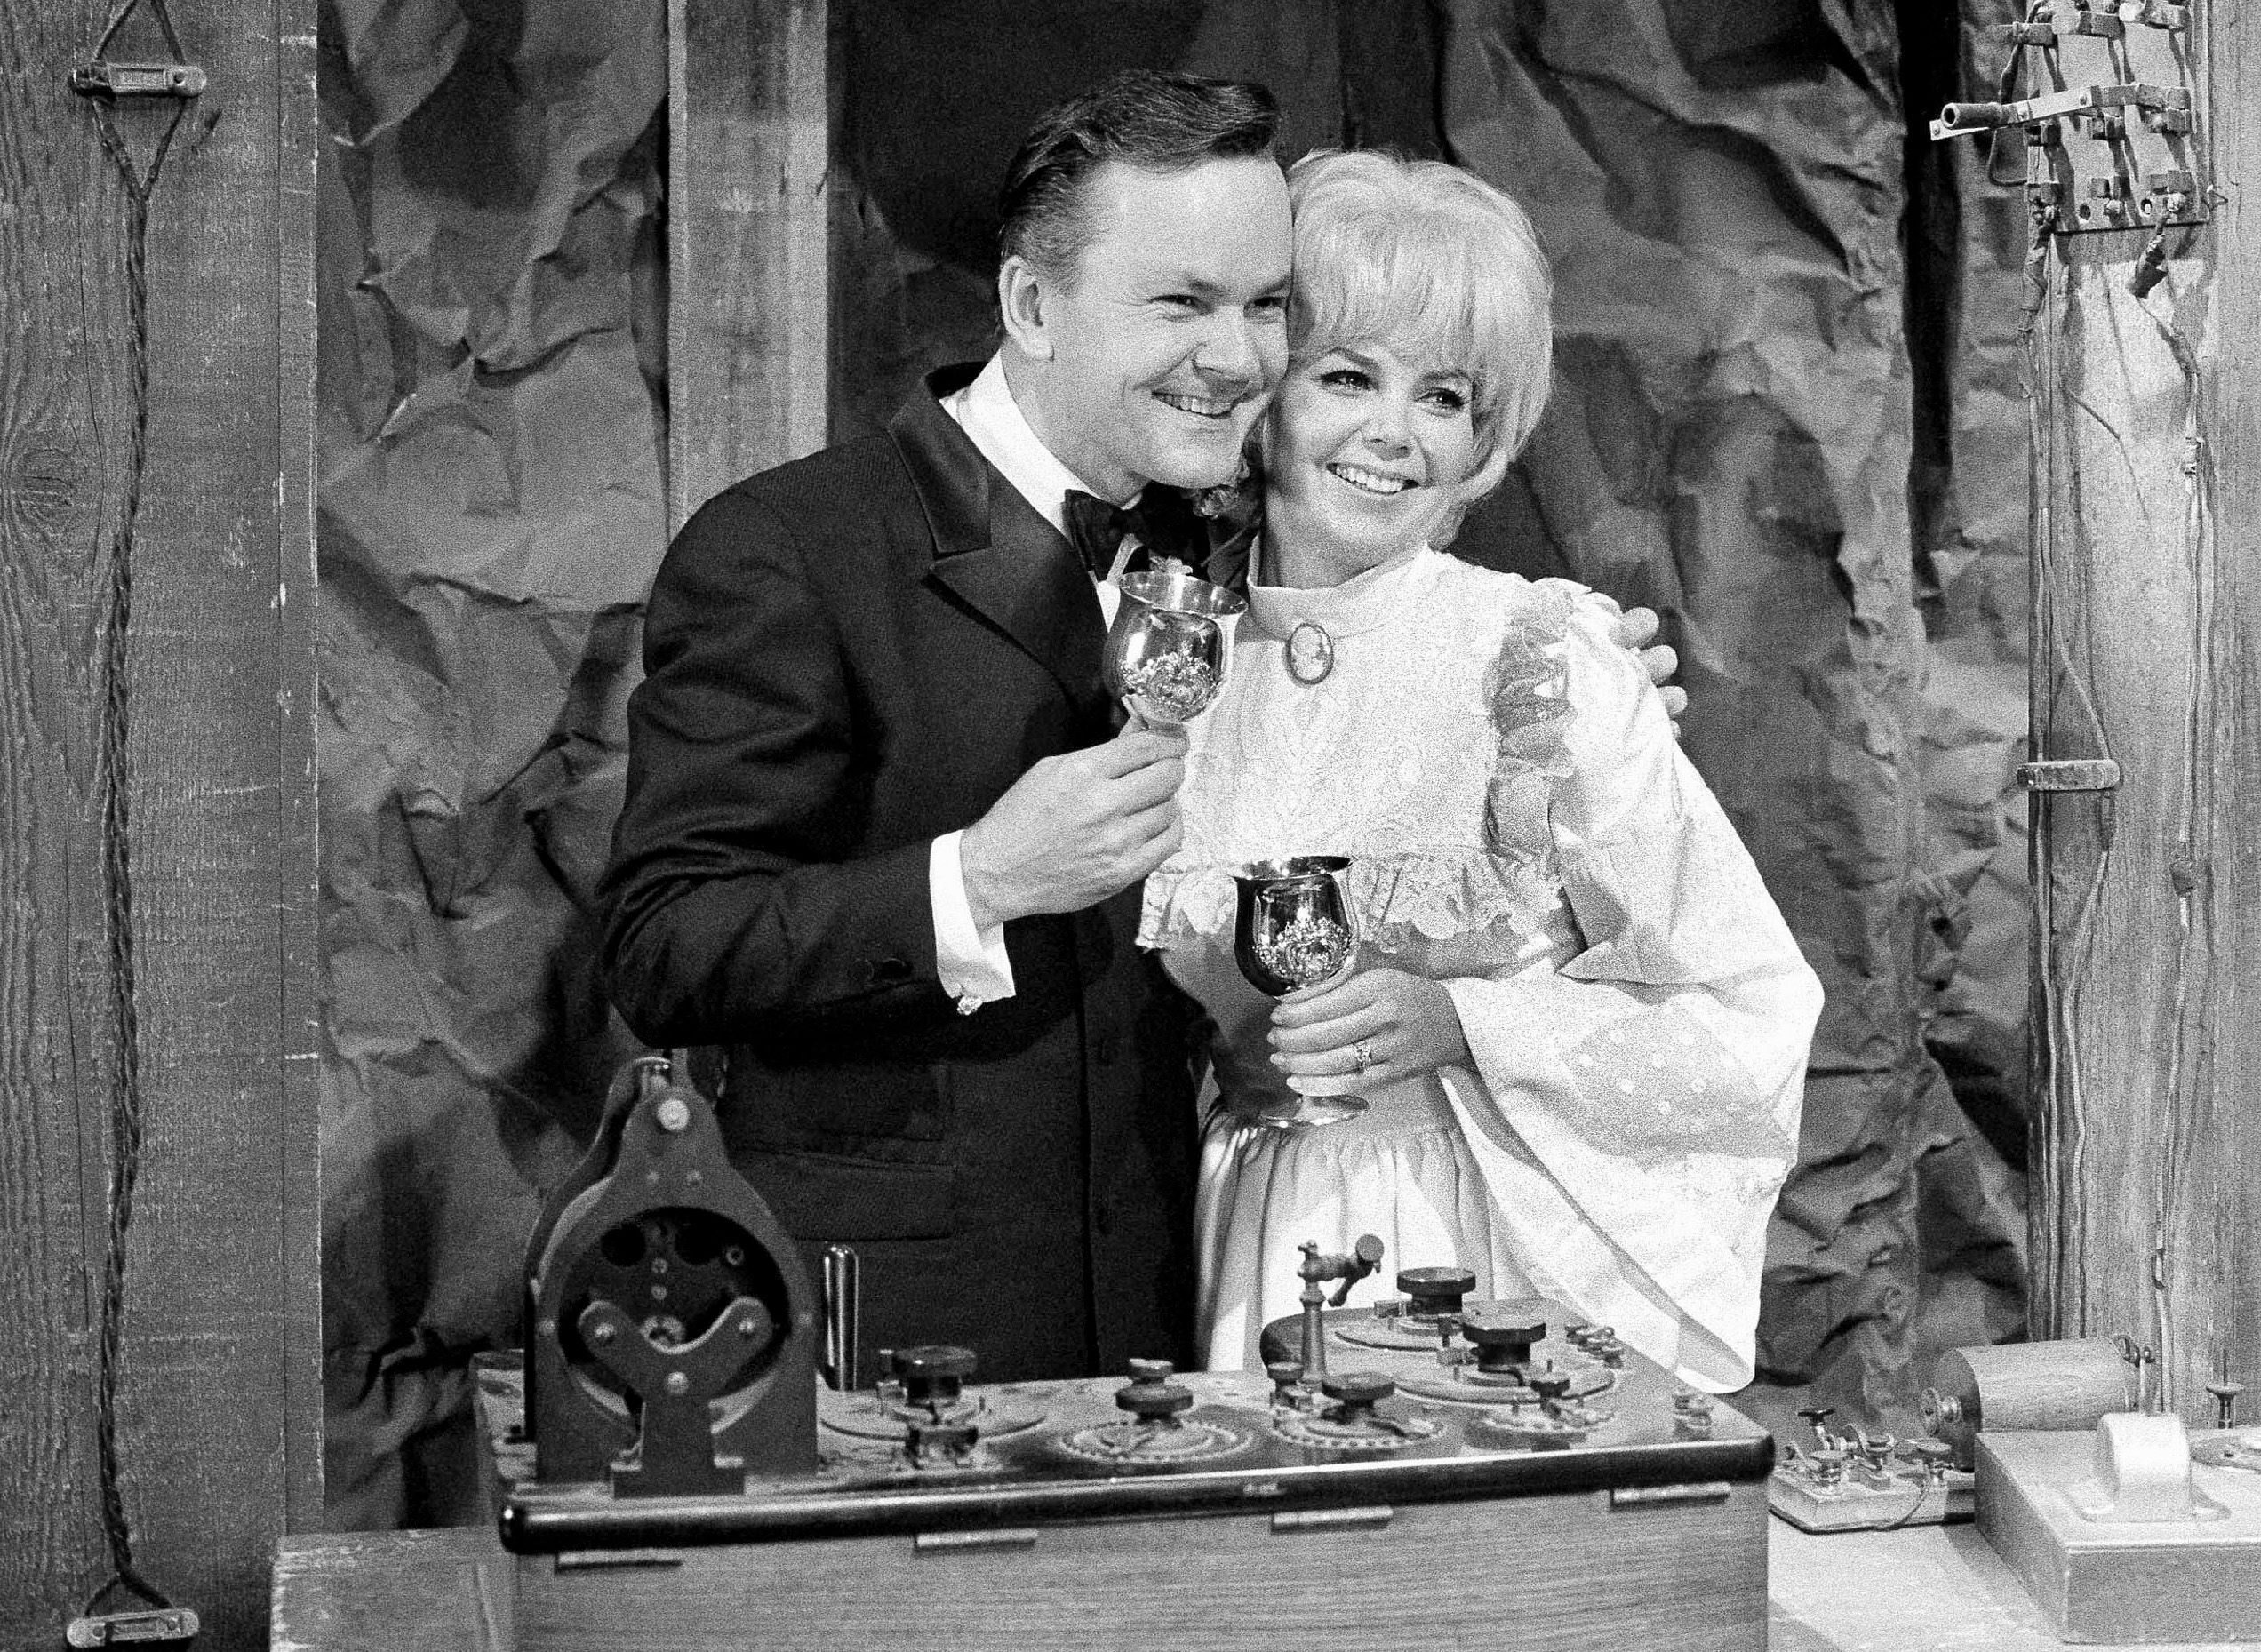 """Actor Bob Crane, star of the television series """"Hogan's Heroes"""", poses with fellow cast member Sigrid Valdis after they were married on the studio set in Hollywood, . Valdis, who played Colonel Klink's secretary on """"Hogan's Heroes"""", died Oct. 14, 2007. Scotty Crane told the Los Angeles Times that his mother died of lung cancer. She was 72 Obit Klinks Secretary, Hollywood, USA"""